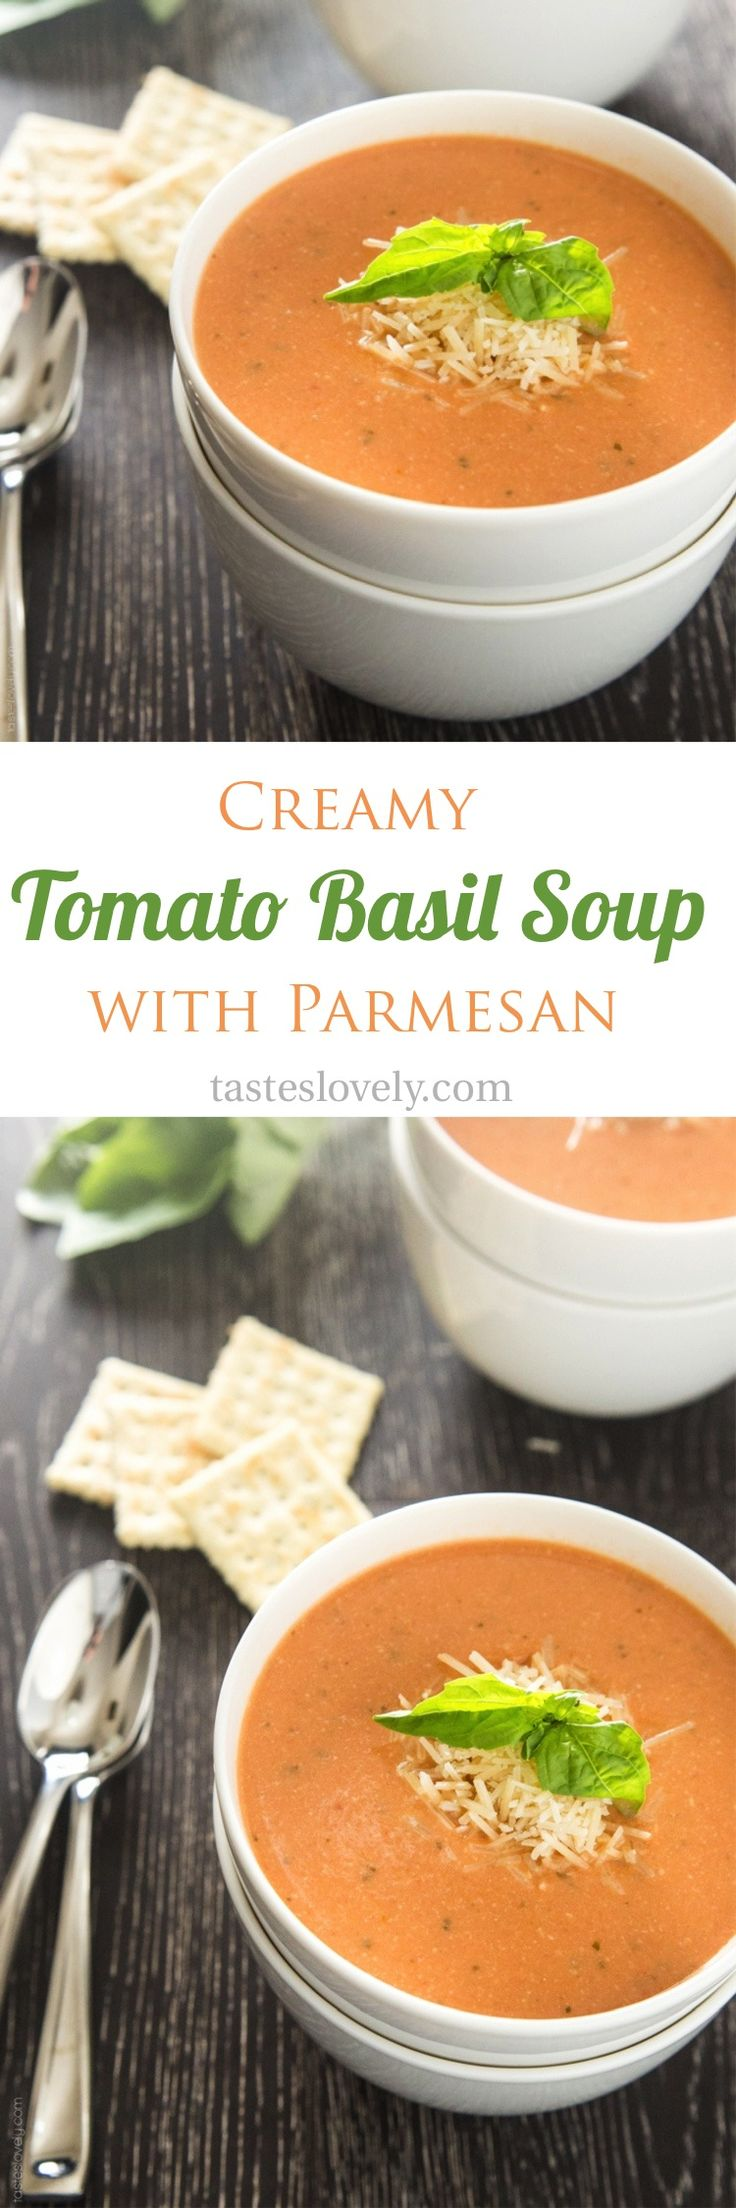 winter coats for girls Creamy Tomato Basil Soup with Parmesan | Recipe | Tomato Basil Soup, Basil and Parmesan